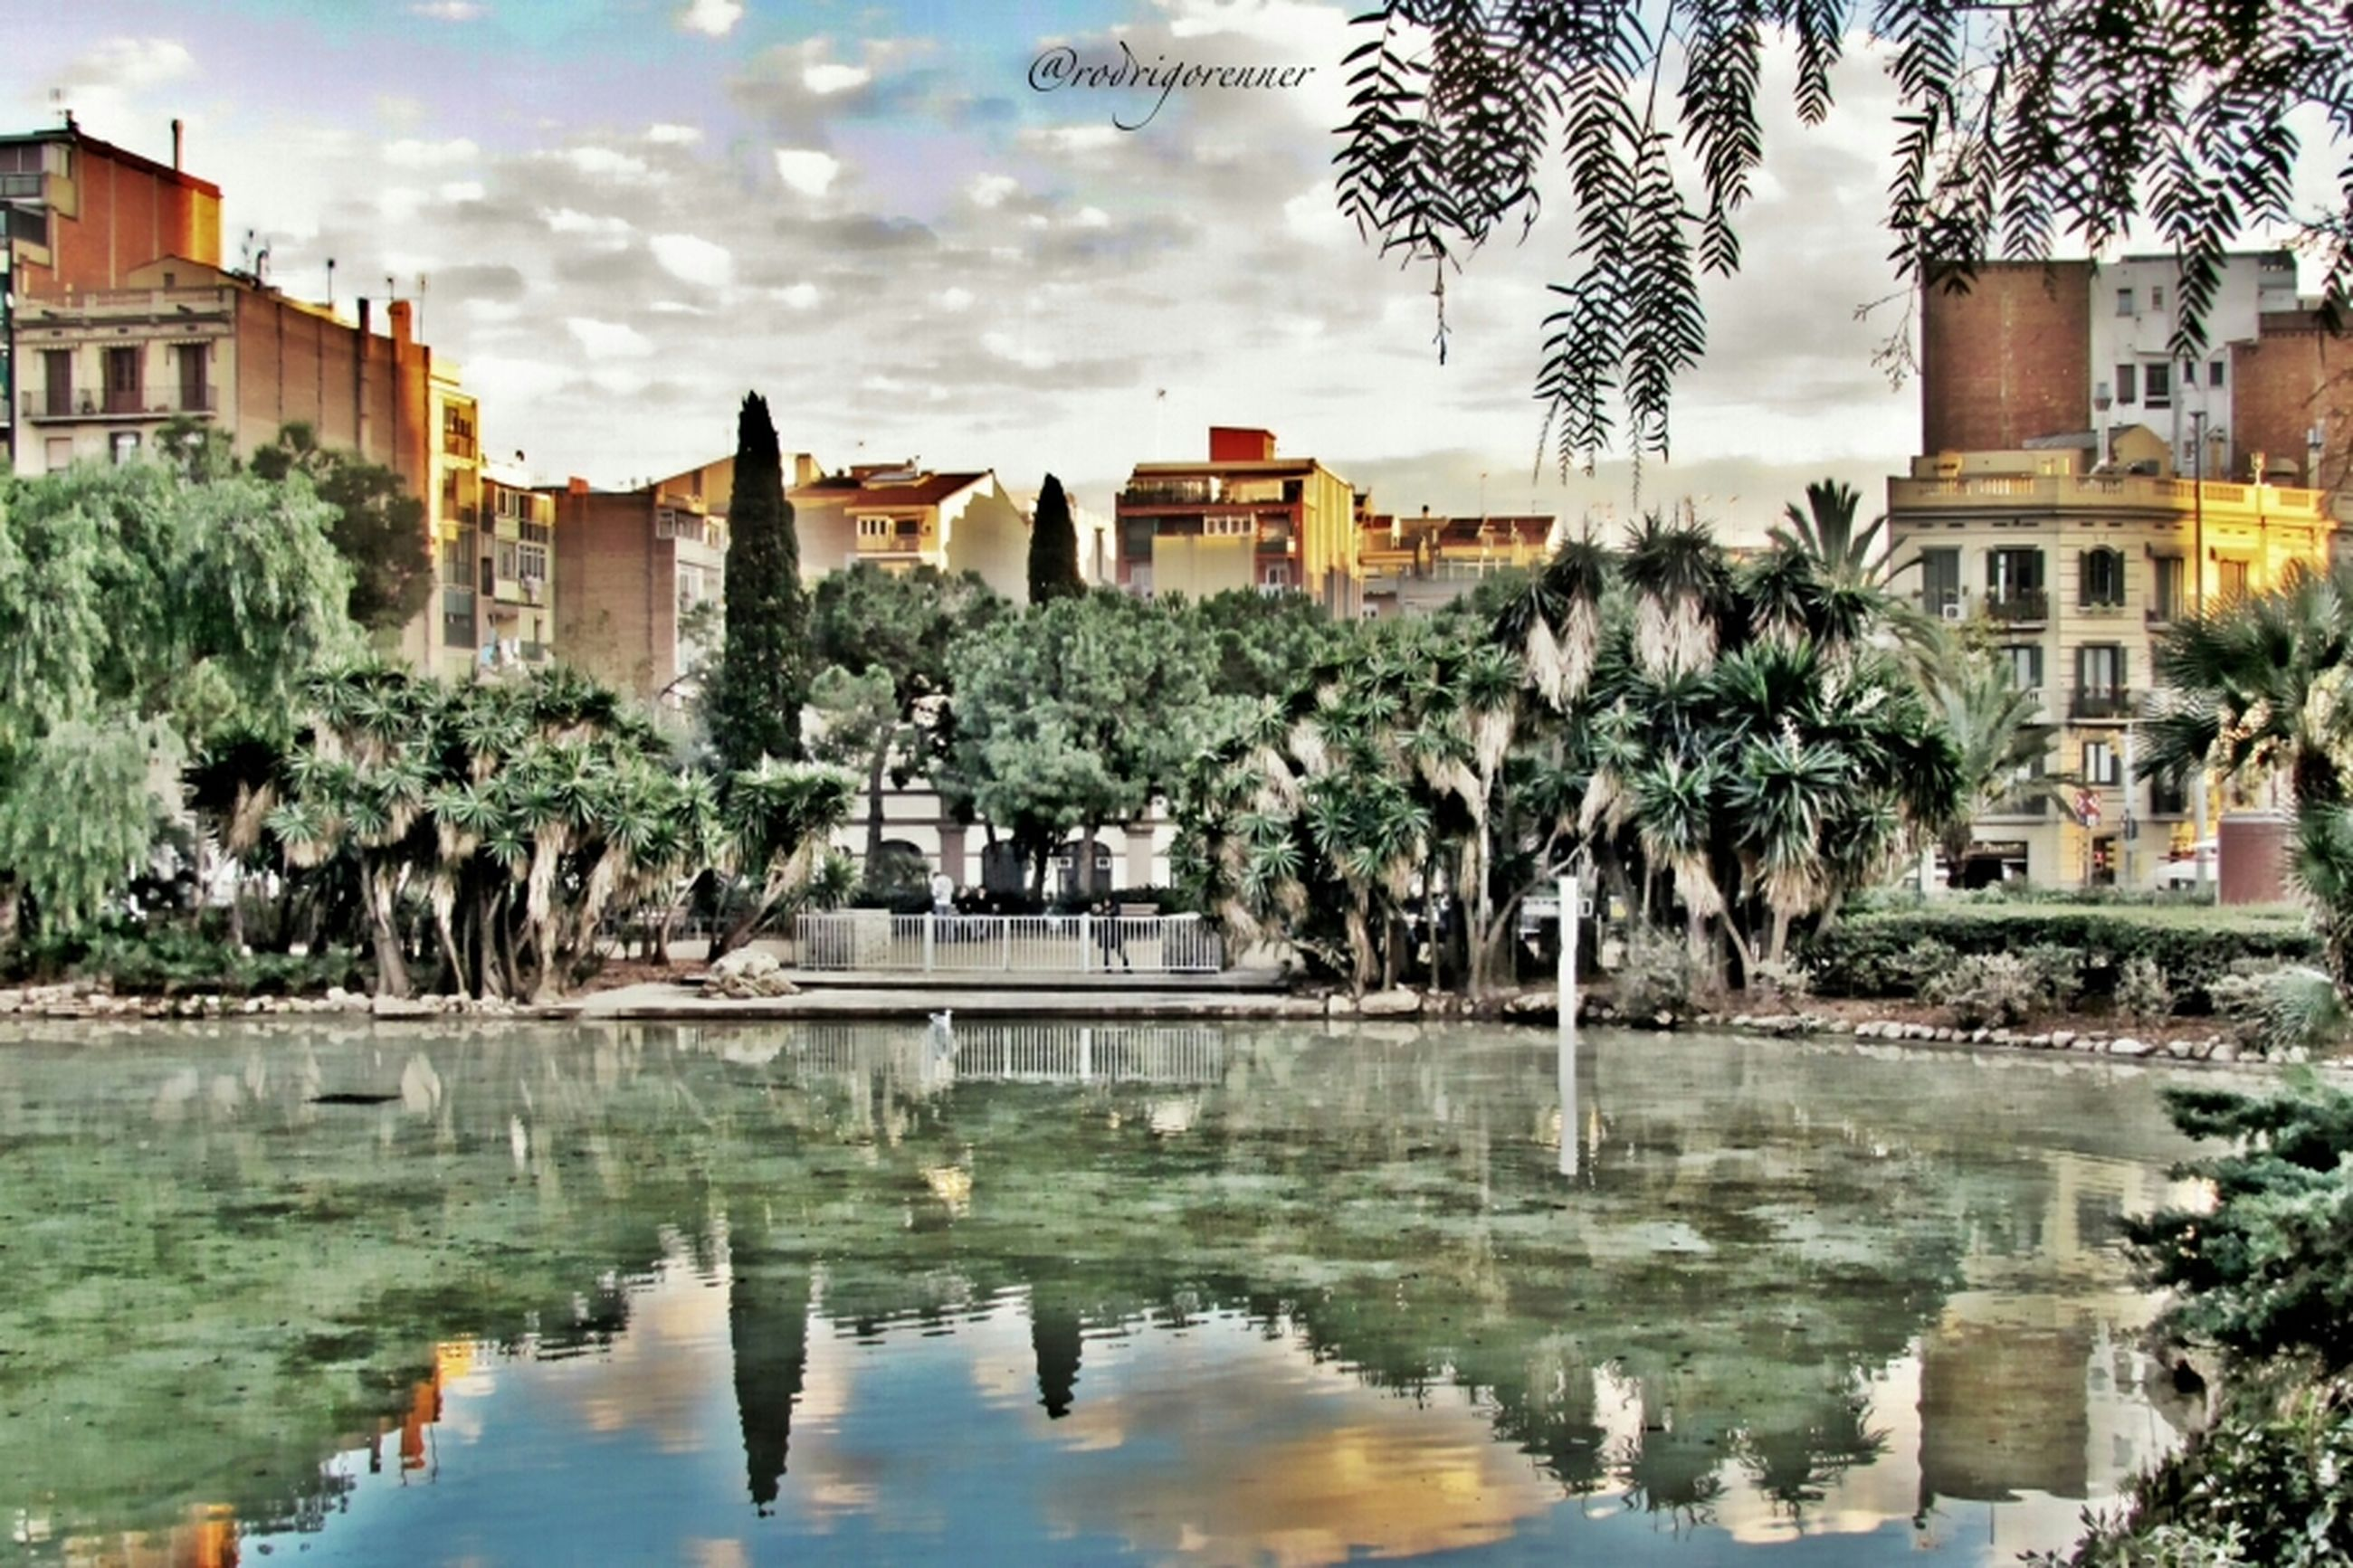 building exterior, architecture, water, tree, built structure, waterfront, reflection, palm tree, sky, city, river, pond, lake, cloud - sky, growth, residential building, cloud, building, nature, outdoors